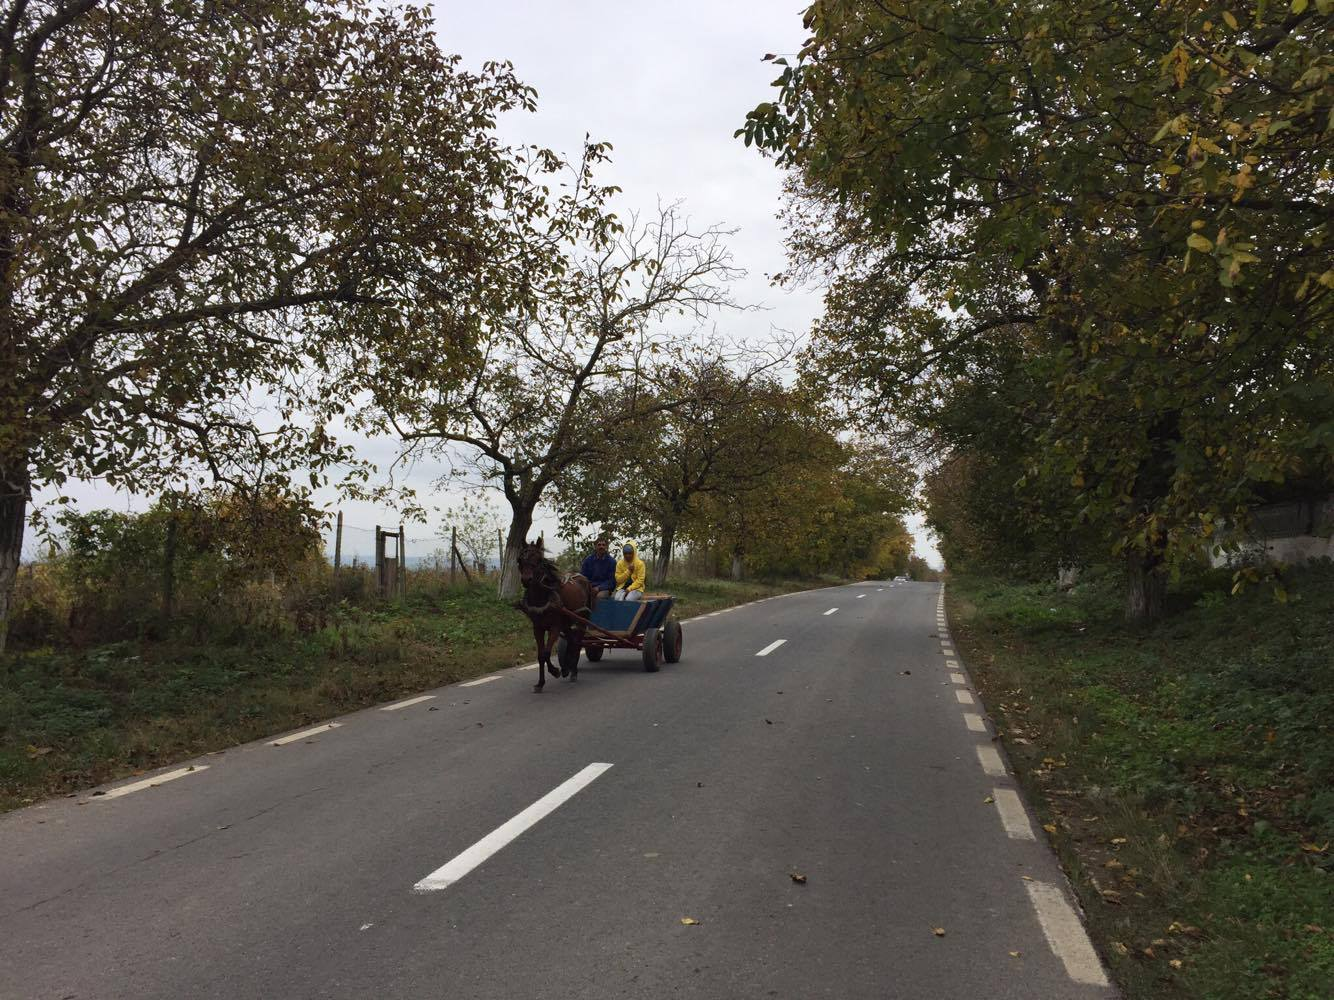 horse and cart romania paul michael cycle for cystic fibrosis